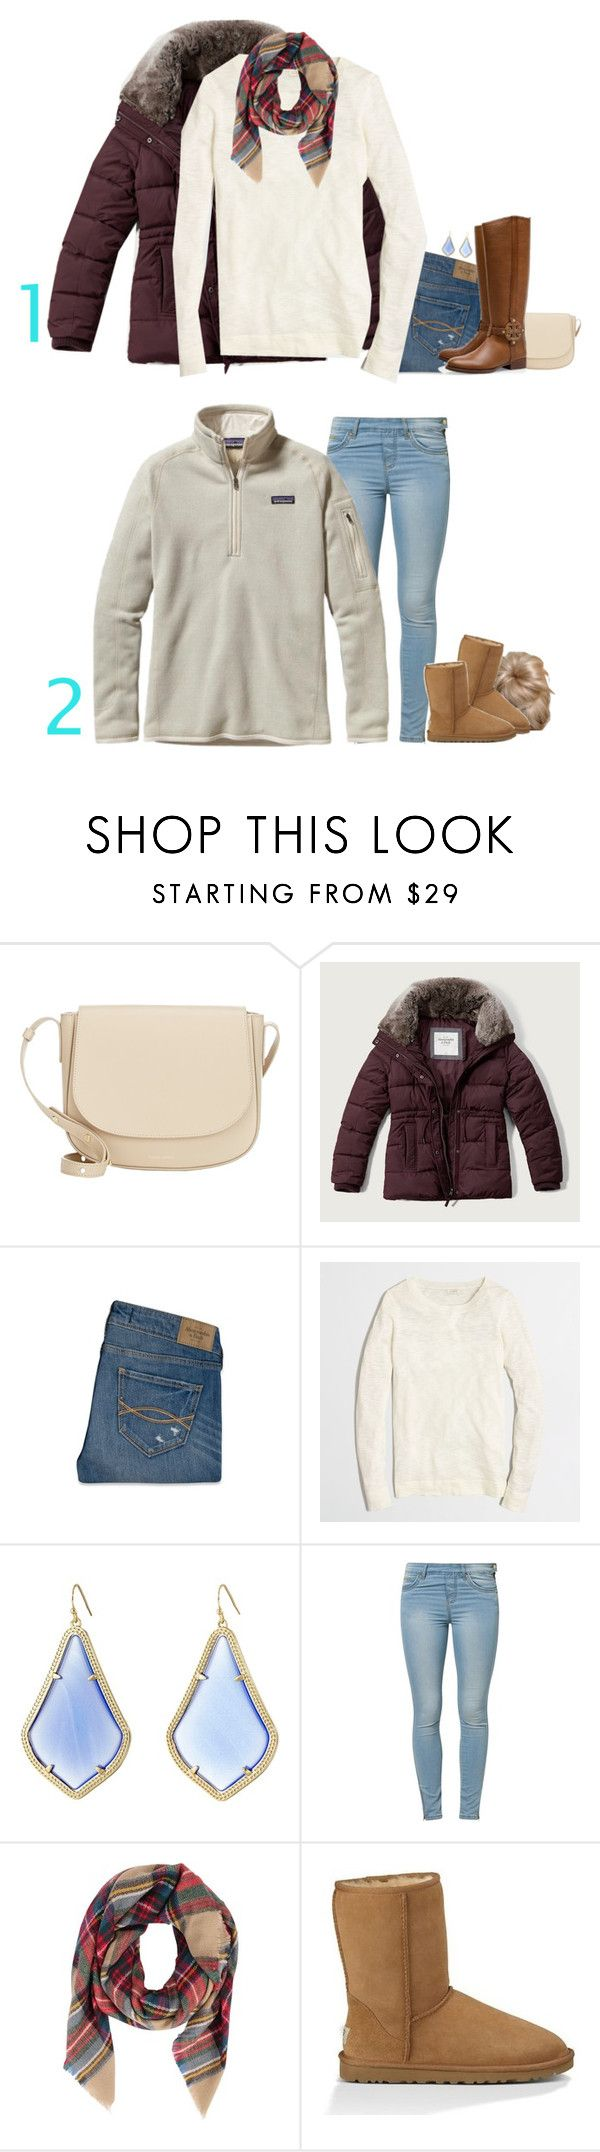 """""""Winter: Are you one or two?"""" by meljordrum ❤ liked on Polyvore featuring Mansur Gavriel, Abercrombie & Fitch, Tory Burch, J.Crew, Kendra Scott, Jane Norman, UGG Australia, Patagonia, women's clothing and women's fashion"""